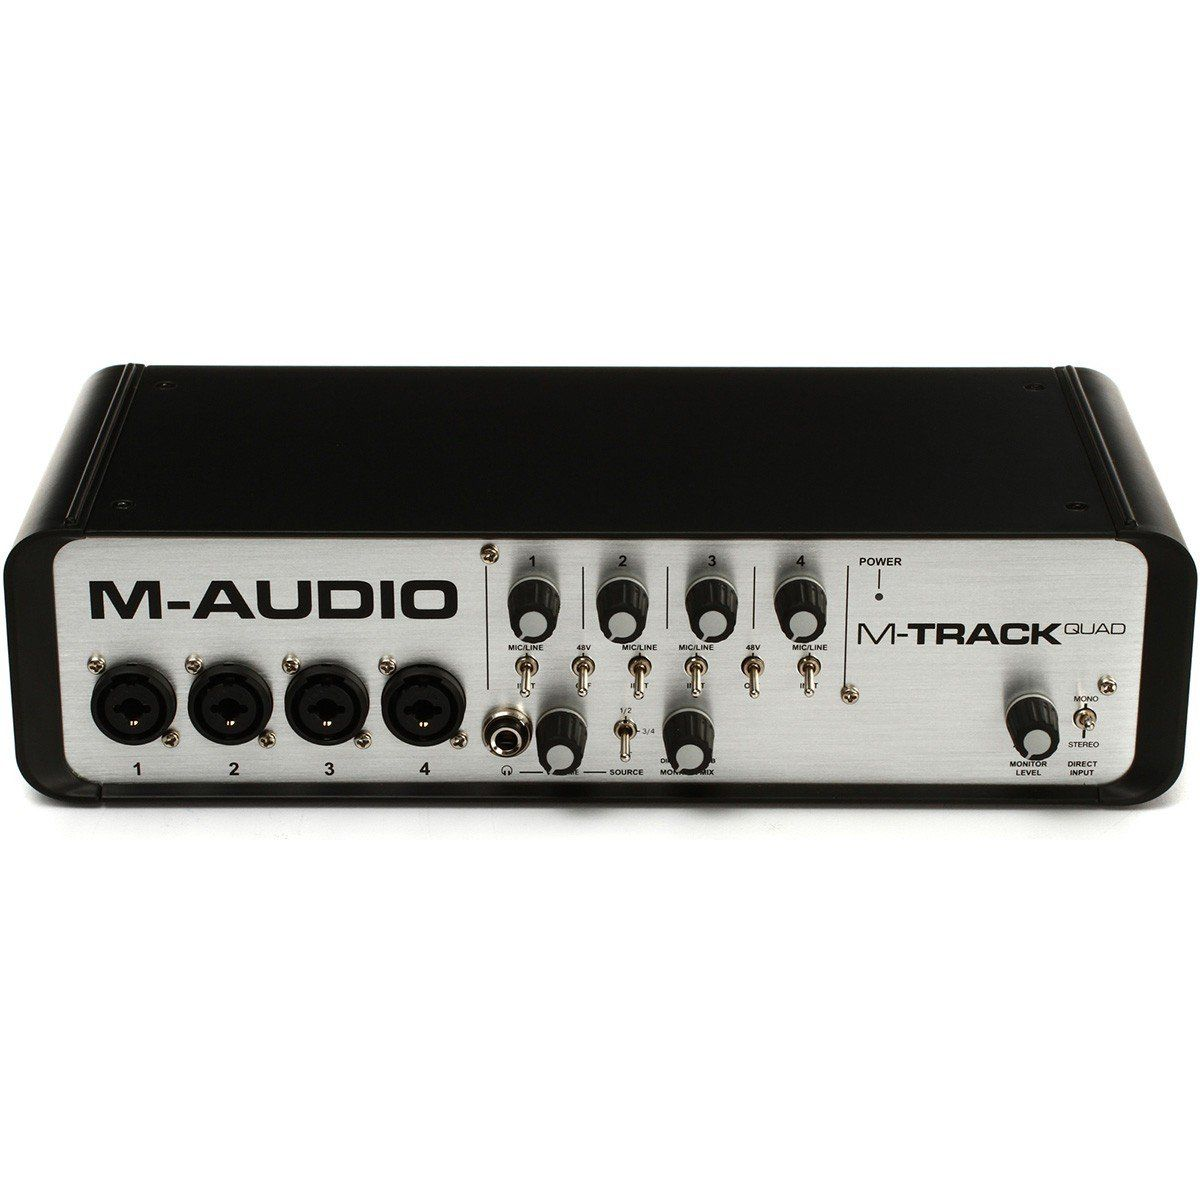 M-Audio M-Track Quad Interface de Áudio Mtrack Quad 4x4 Usb 24-Bit 96-Khz Pro Tools